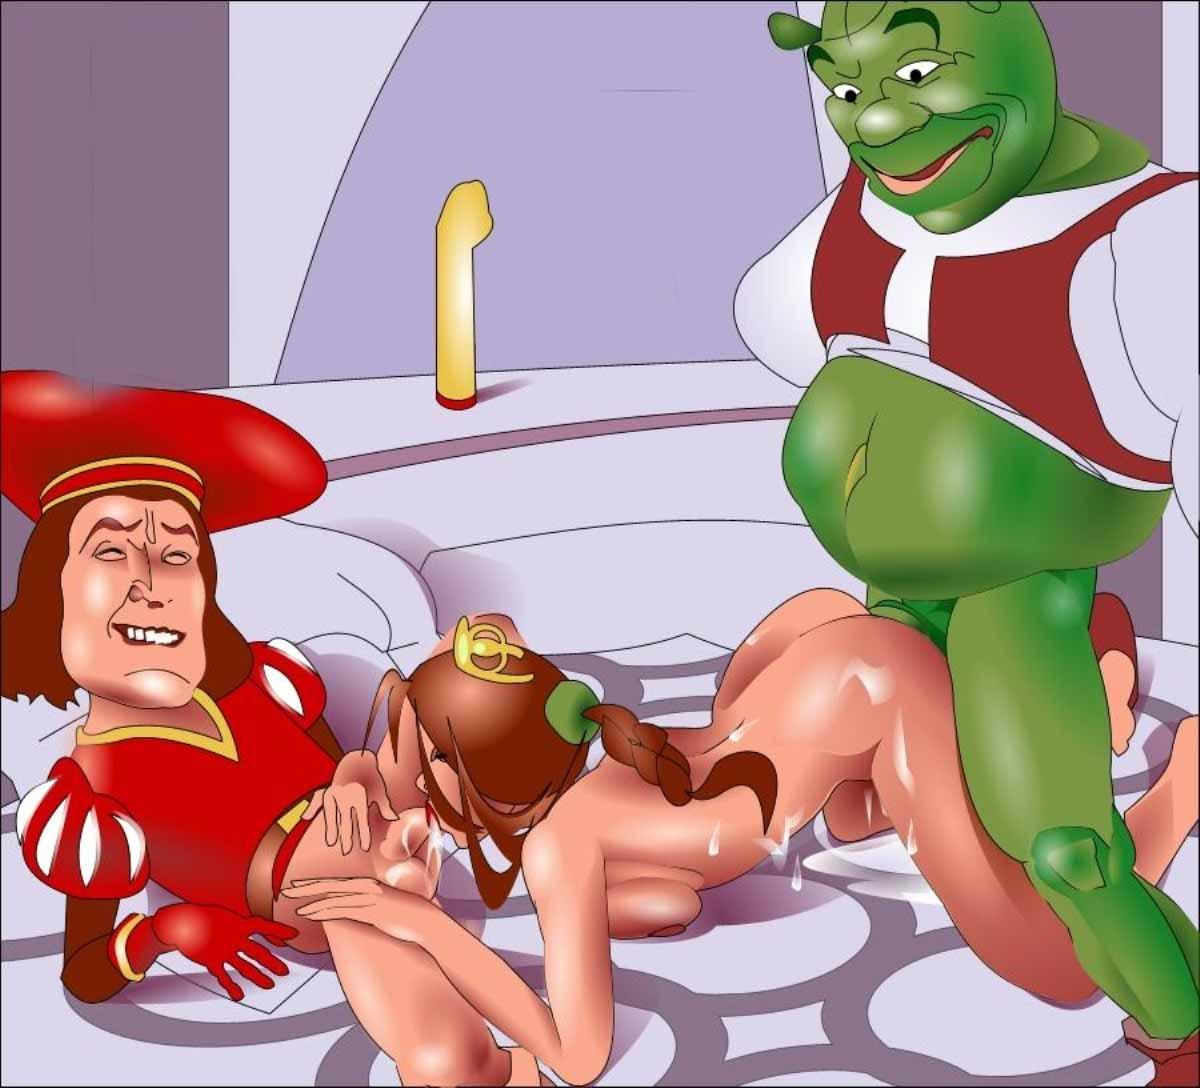 Foto cartoons shrek xxx sex images